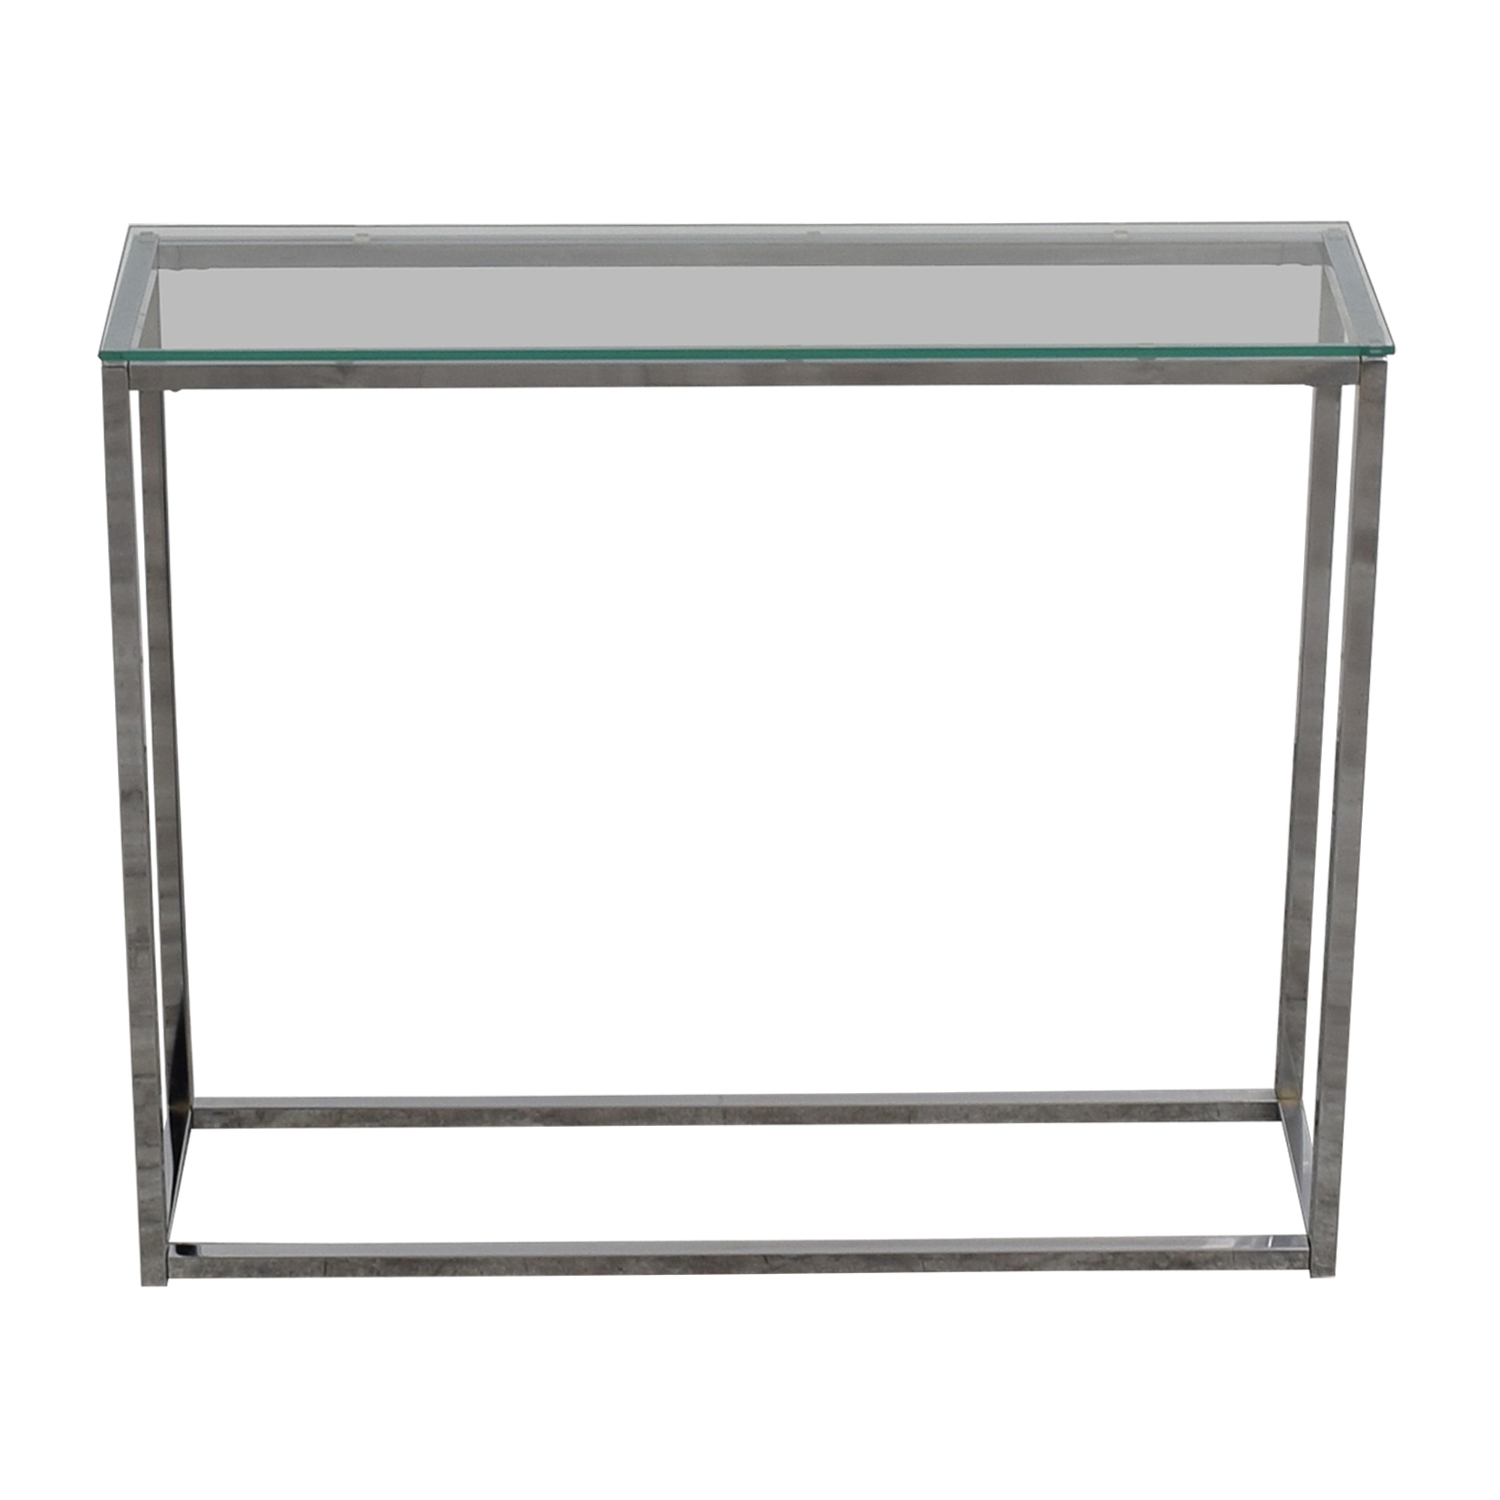 off glass and chrome console table tables used metal accent sofa with shelf dimensions shabby chic chest drawers grey nest white coffee storage floral lamp ikea box laminate floor